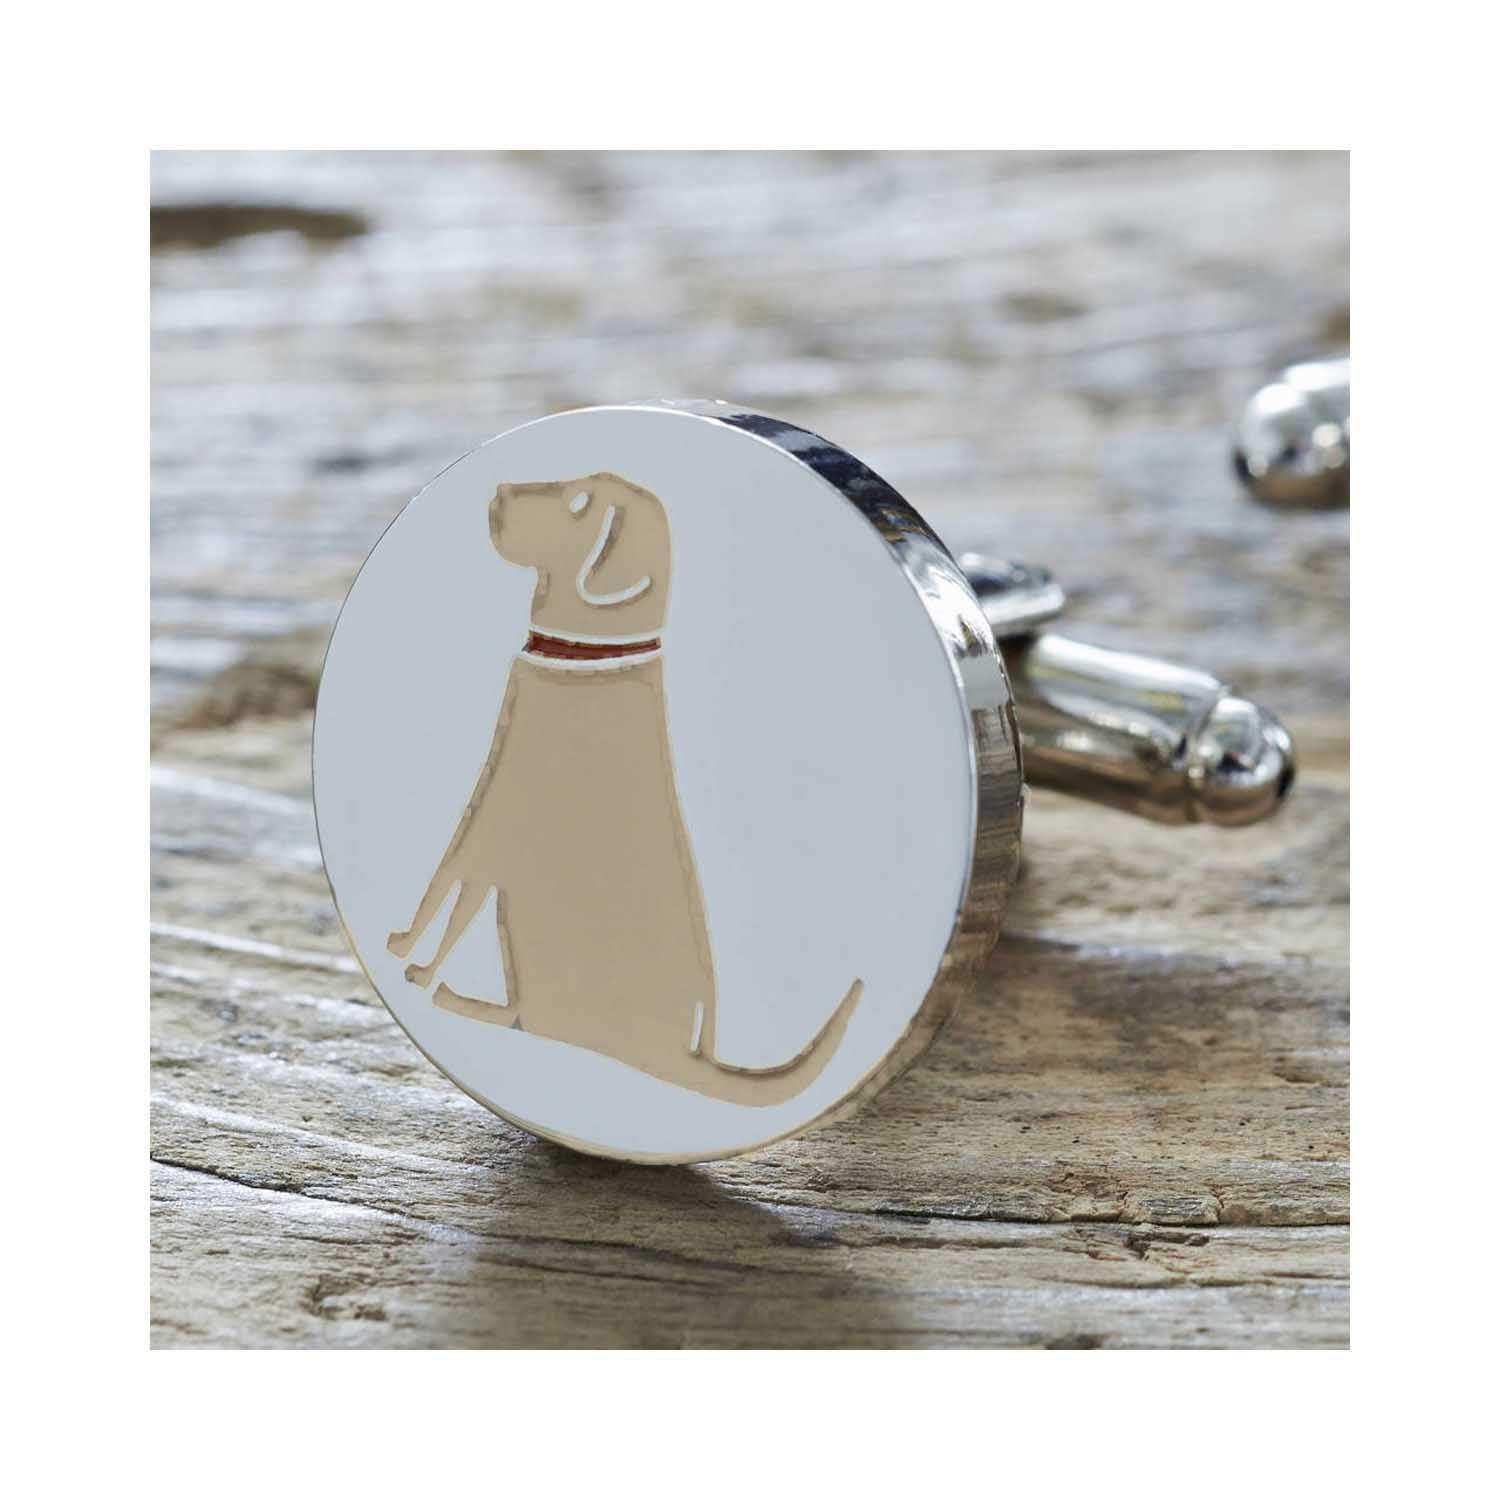 Dog Lover Gifts available at Dog Krazy Gifts - Daisy The Yellow Labrador Cufflink and Dog Tag Set - part of the Sweet William range available from DogKrazyGifts.co.uk